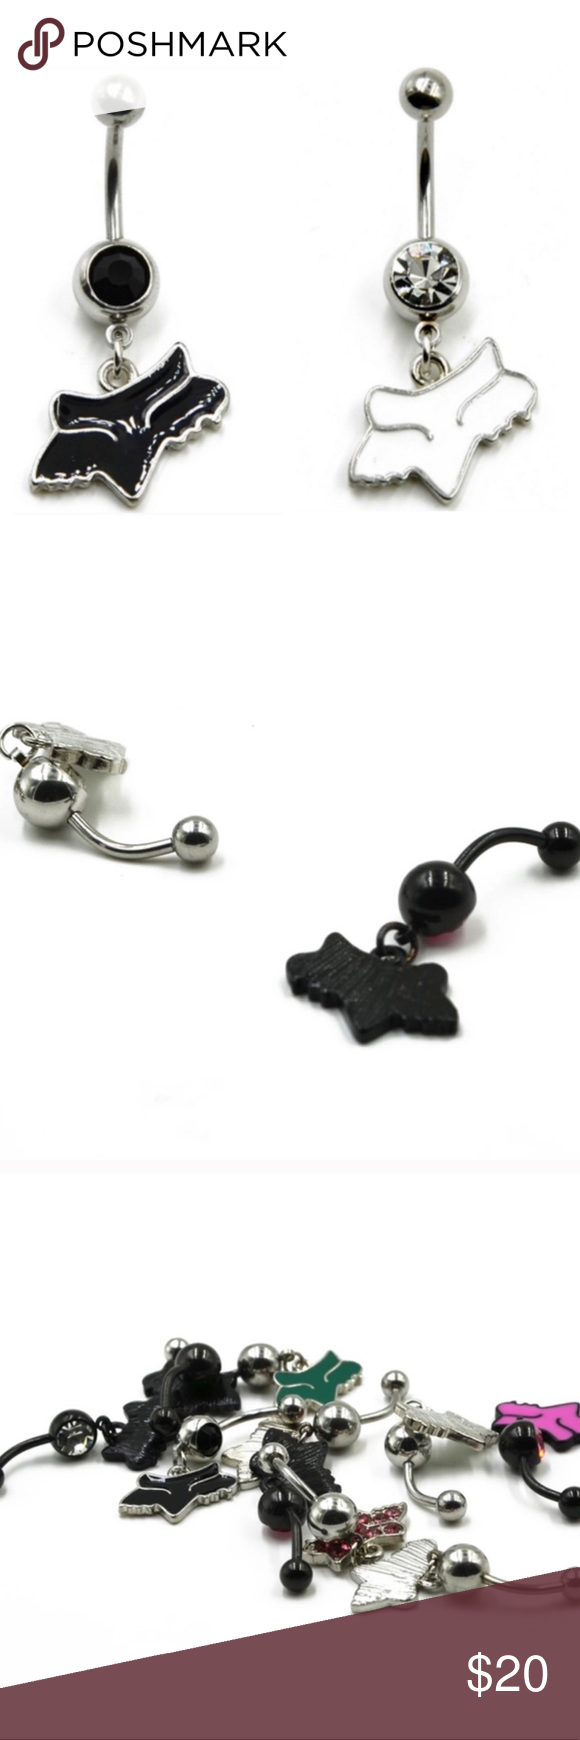 New Set Of 2 Fox Racing Navel Belly Rings Boutique Pinterest Fox